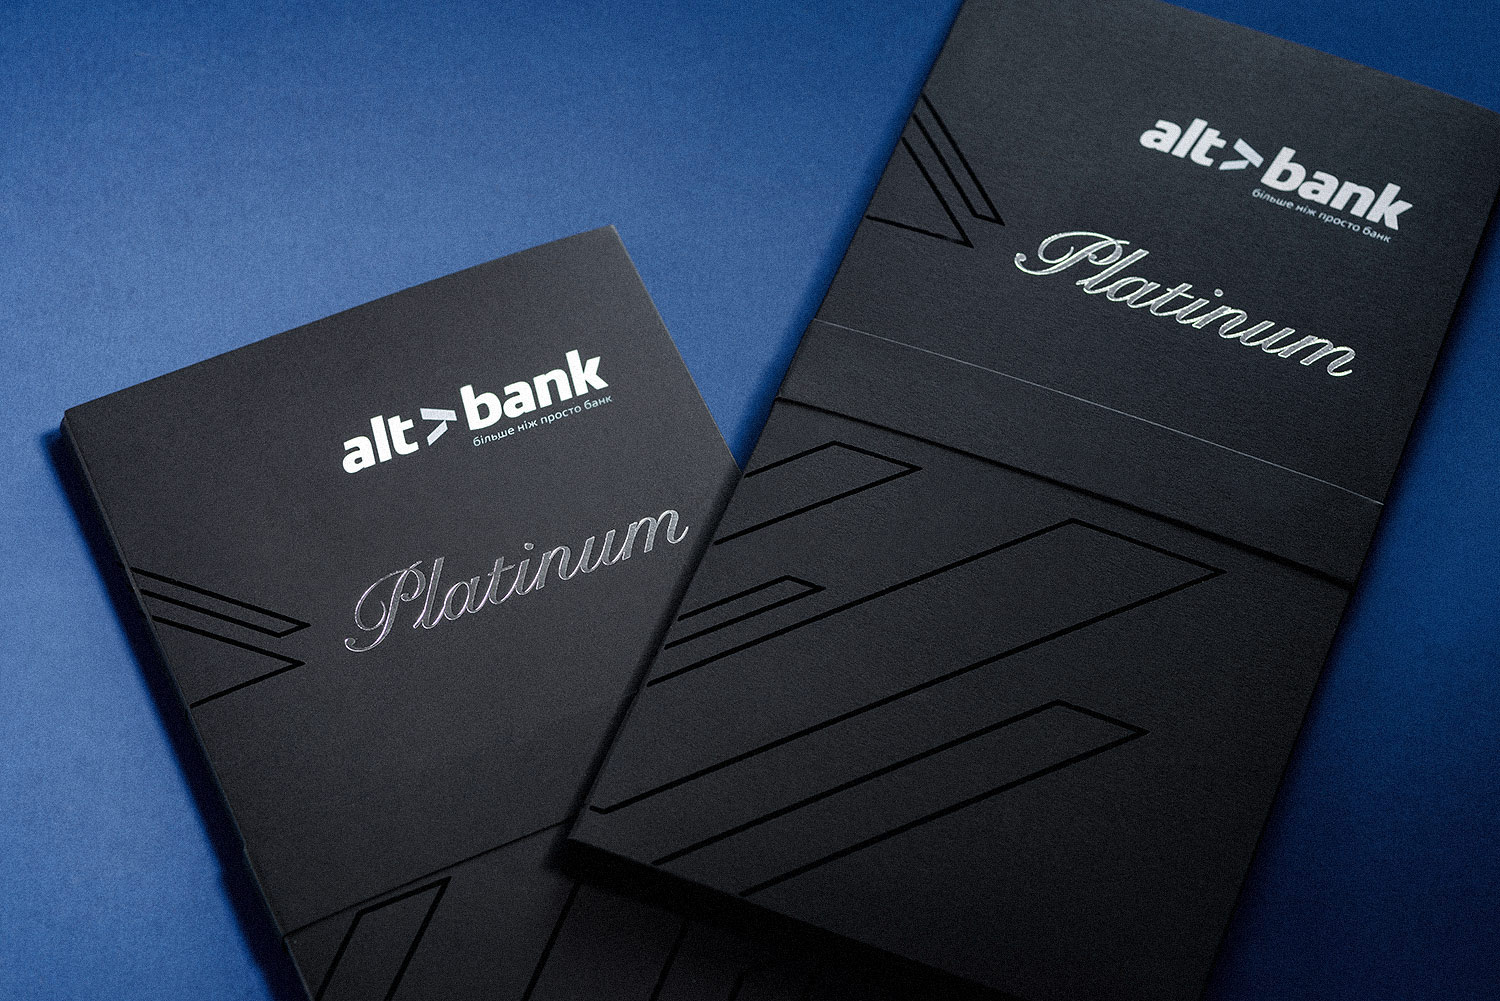 Stylish black packaging for the Altbank Platinum credit card.